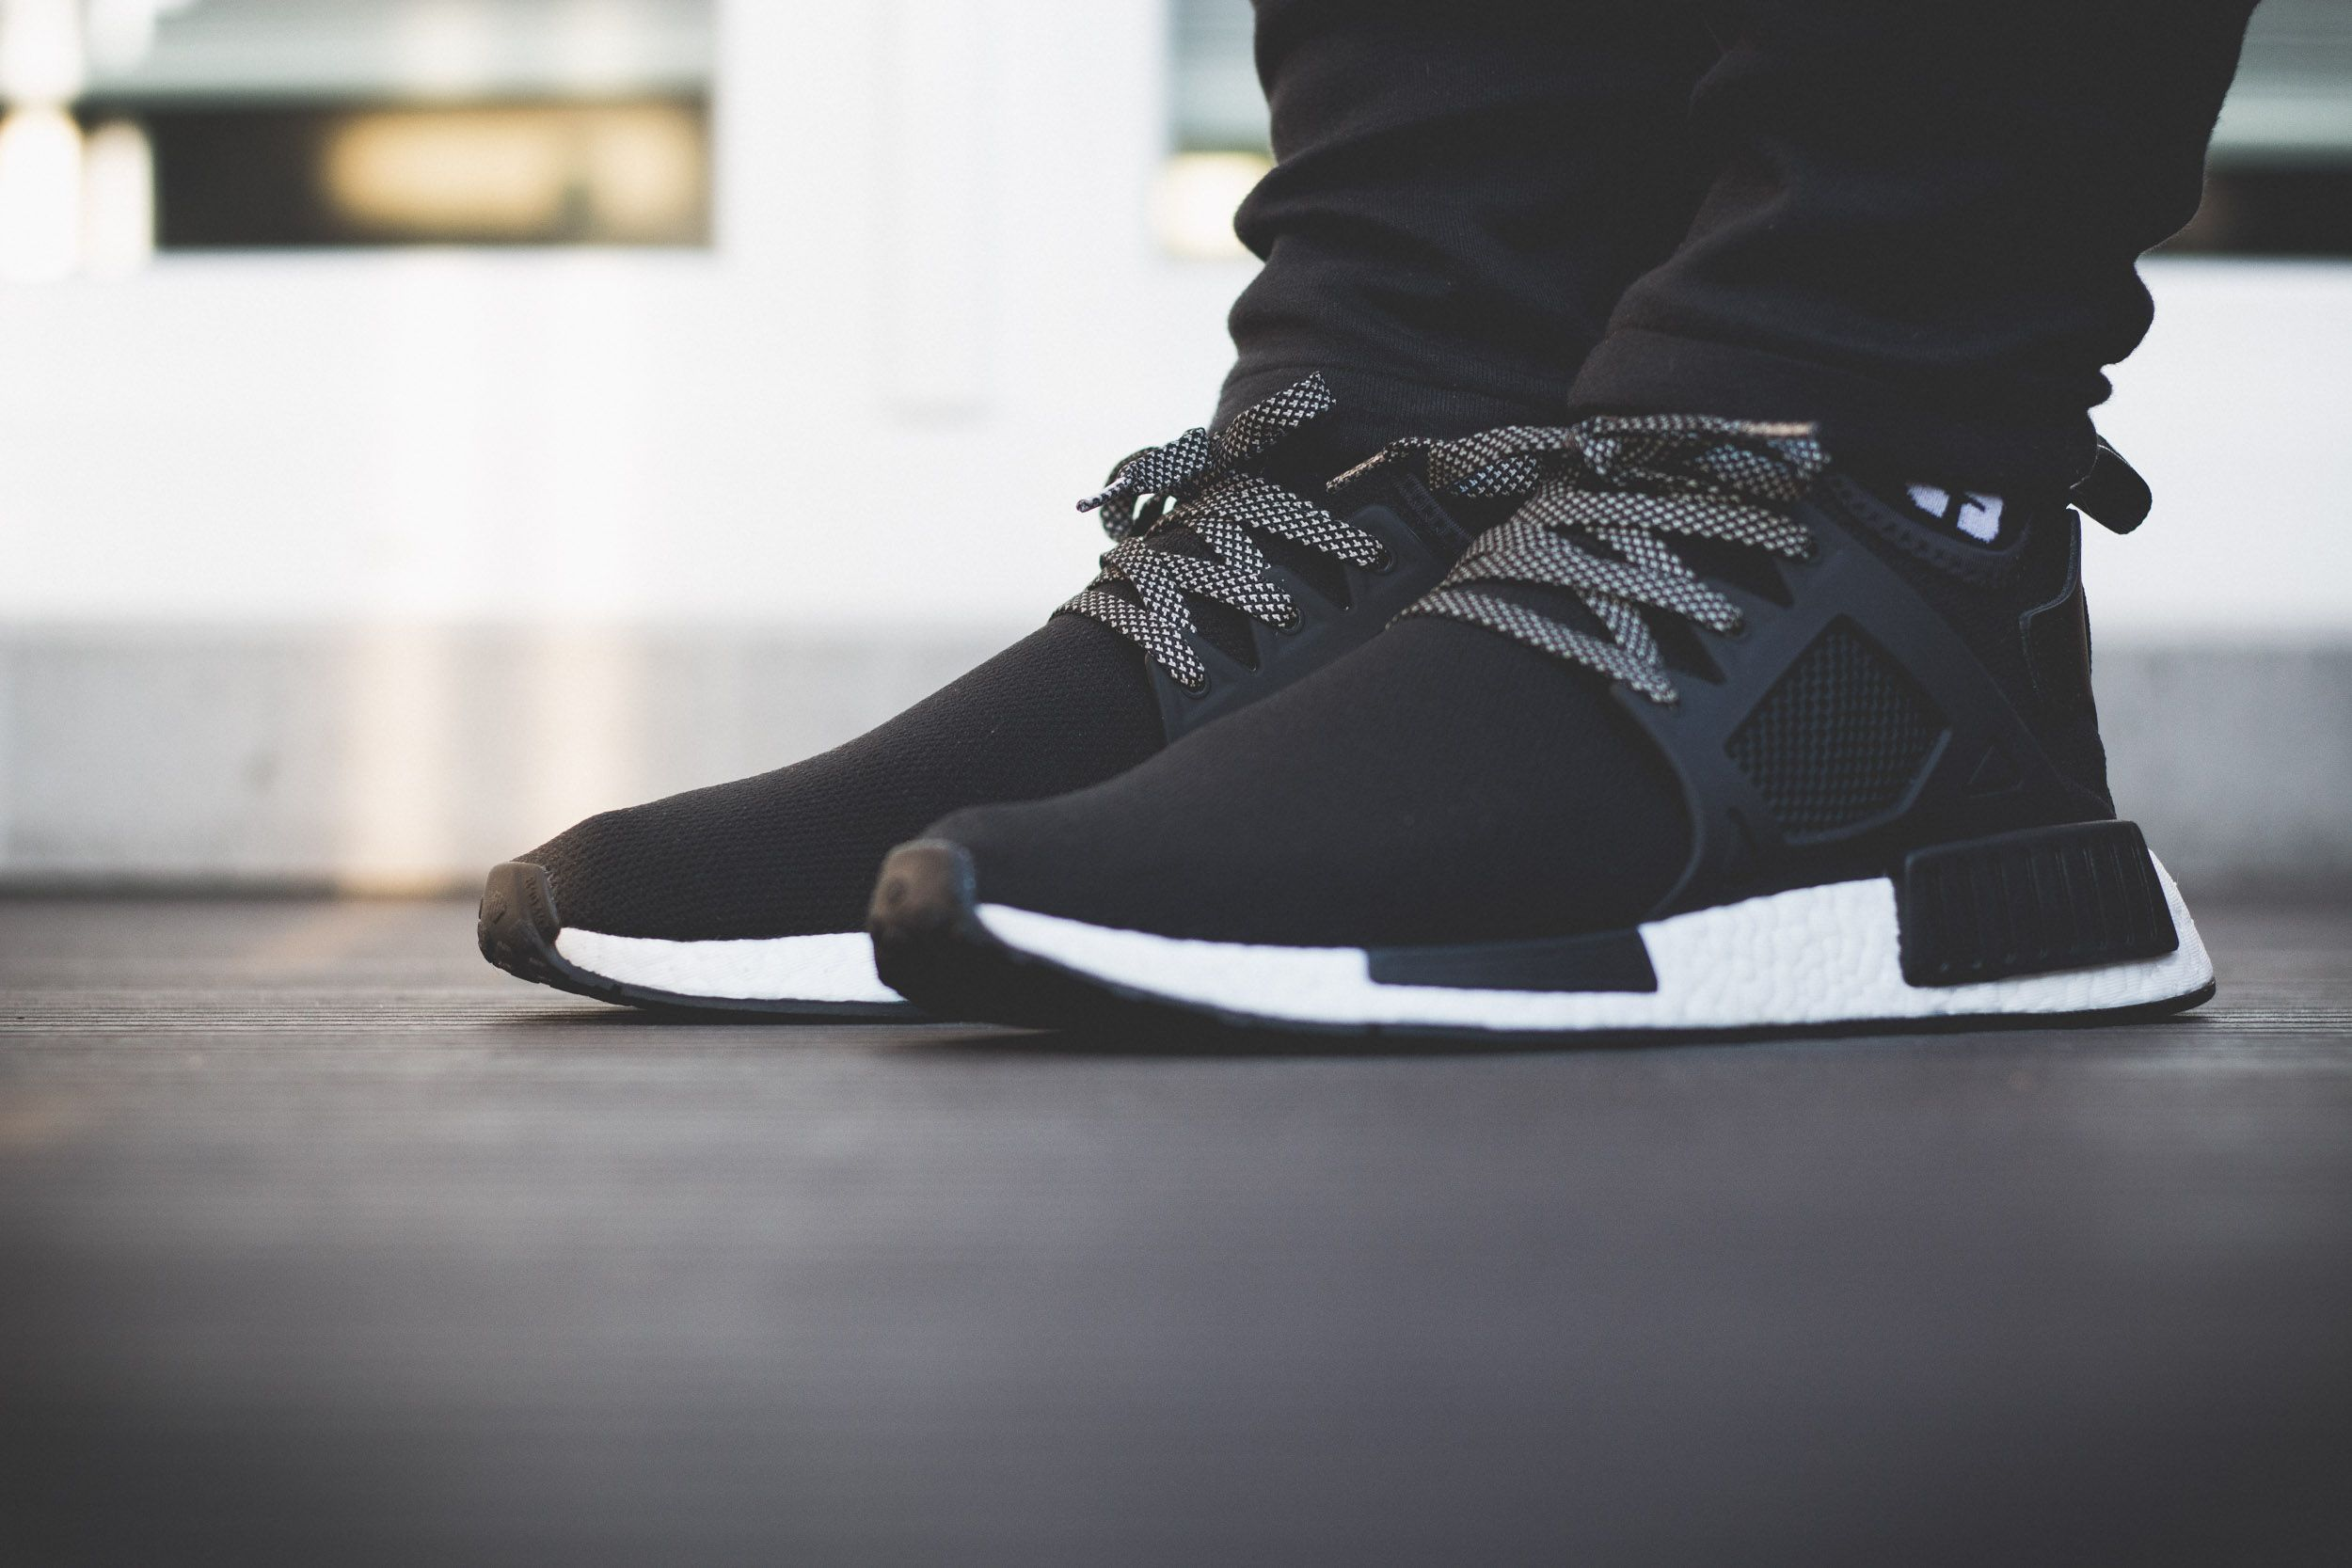 Cheap NMD XR1 Black White artemisoutlet